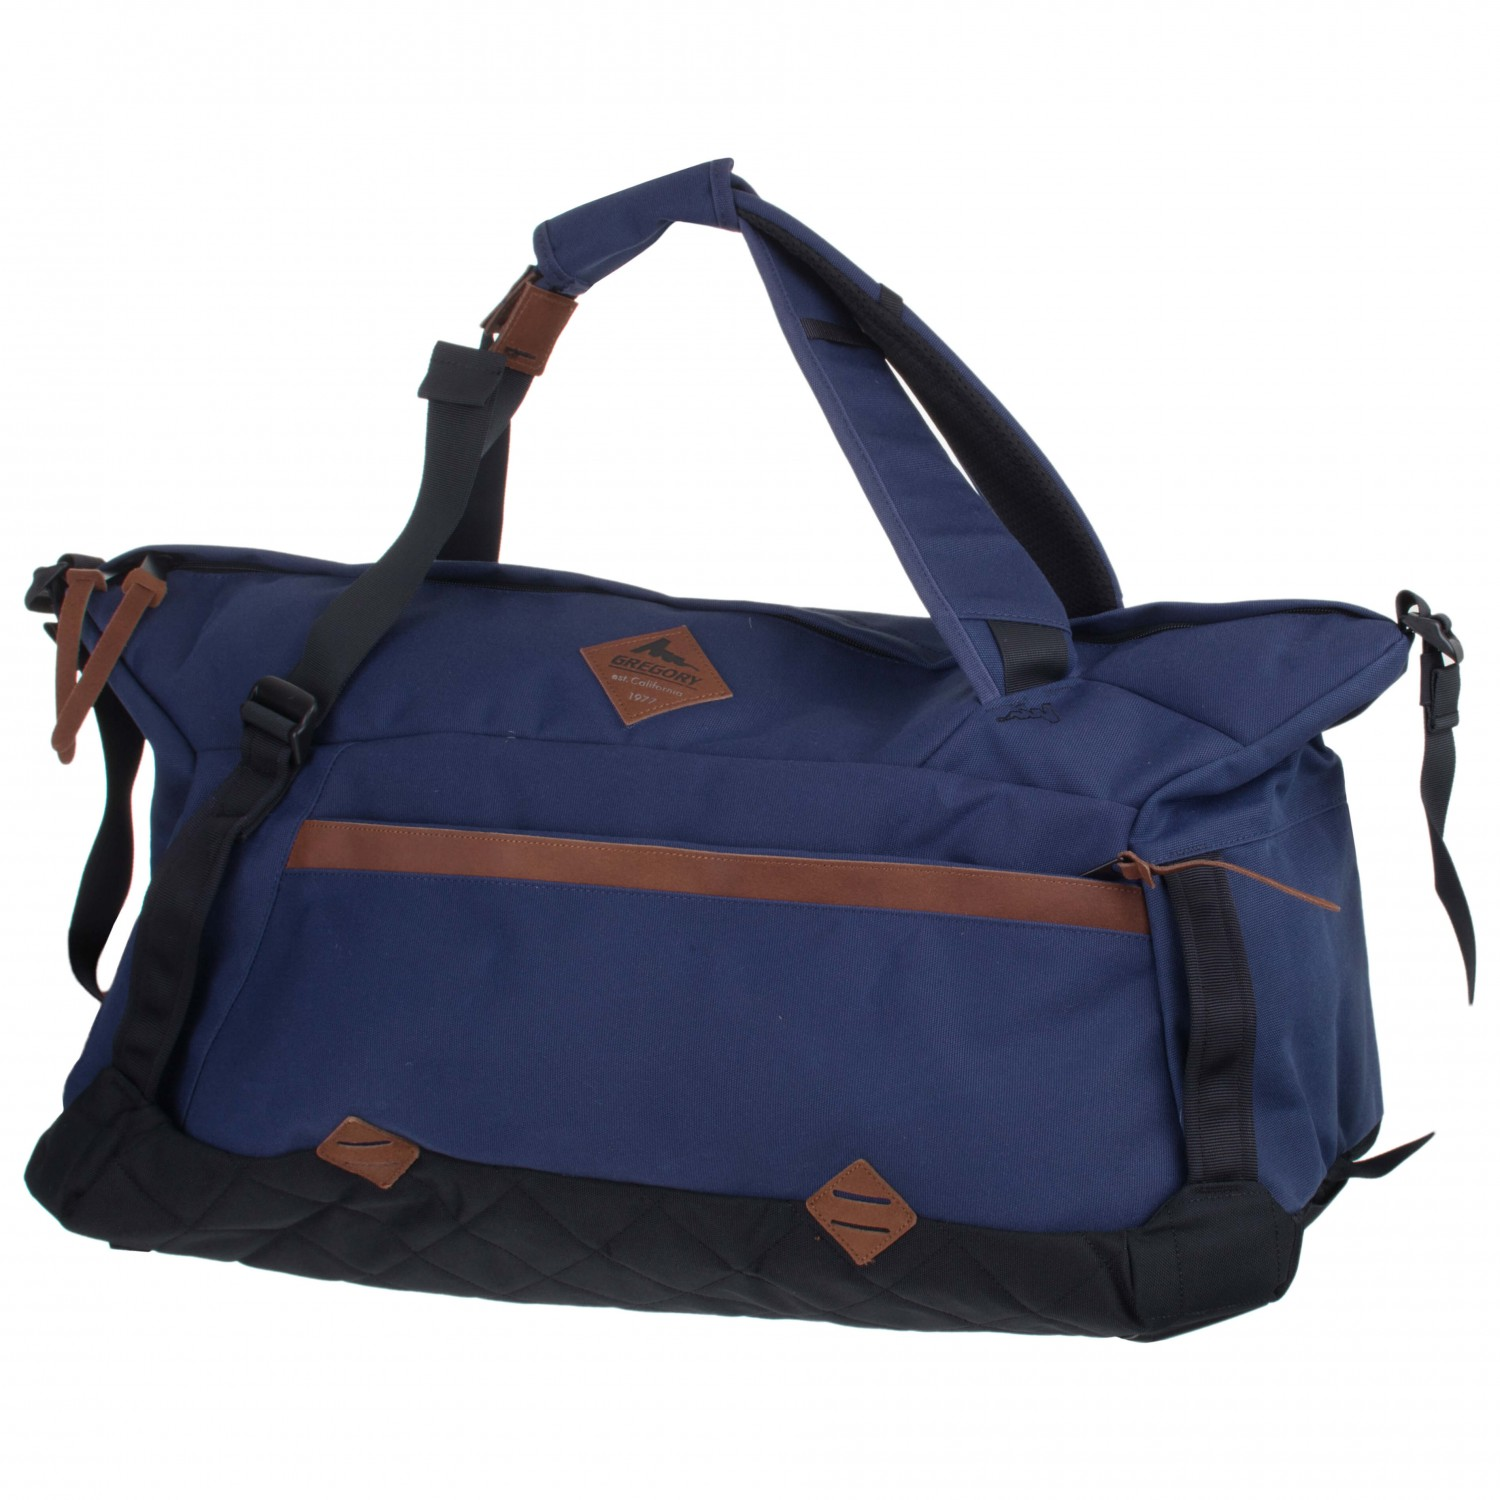 Gregory Sac de voyage Duffle M OpP1up3